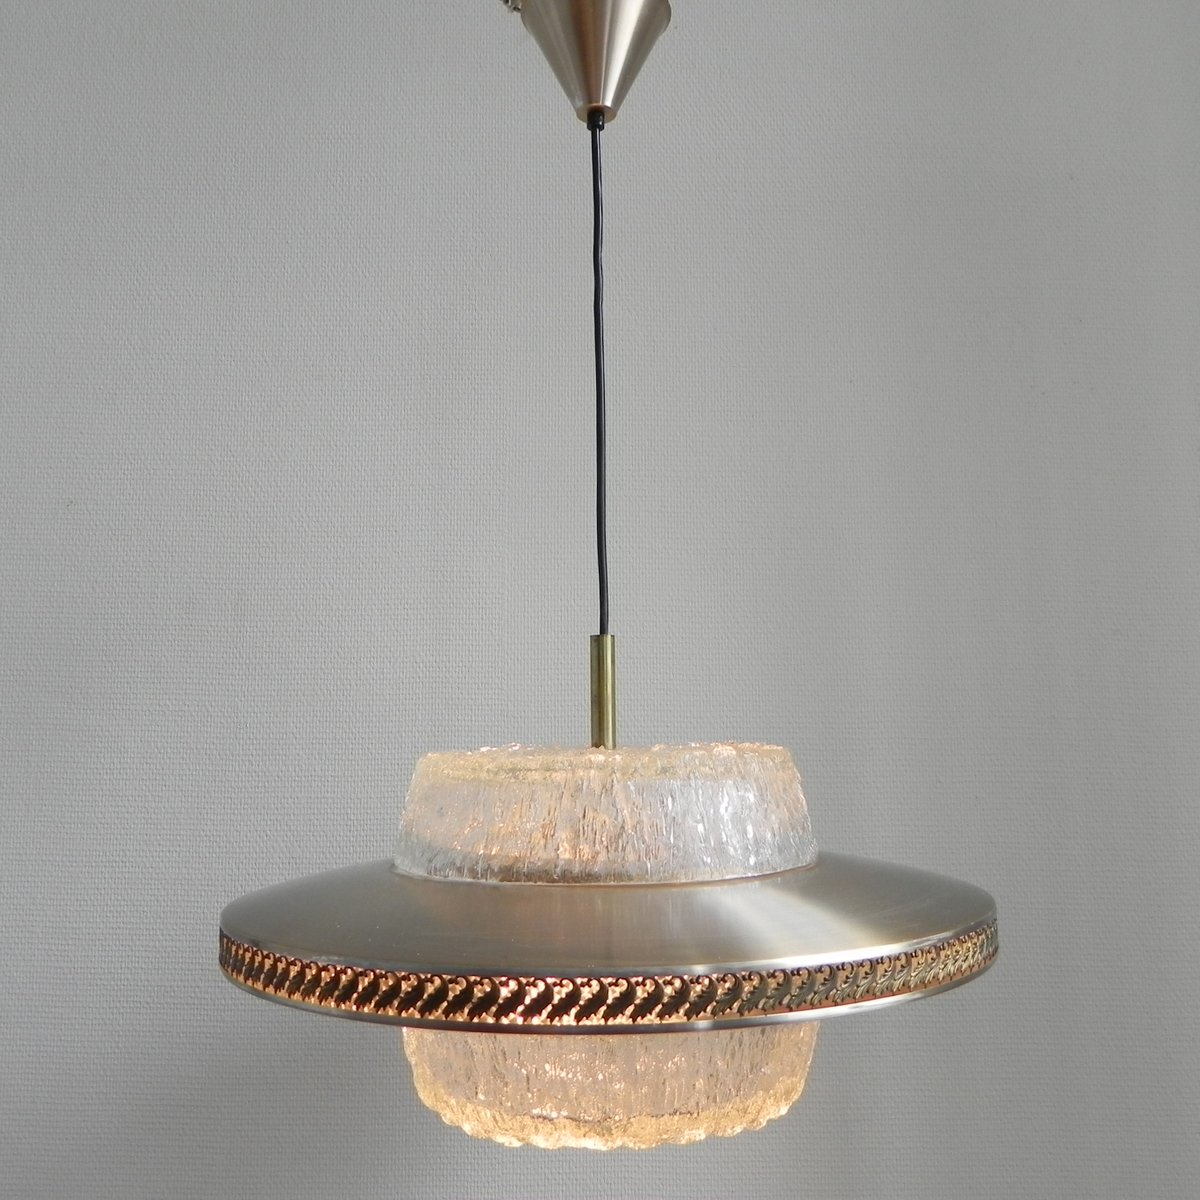 Vintage Dutch Space Age Pendant Lamp 1960s